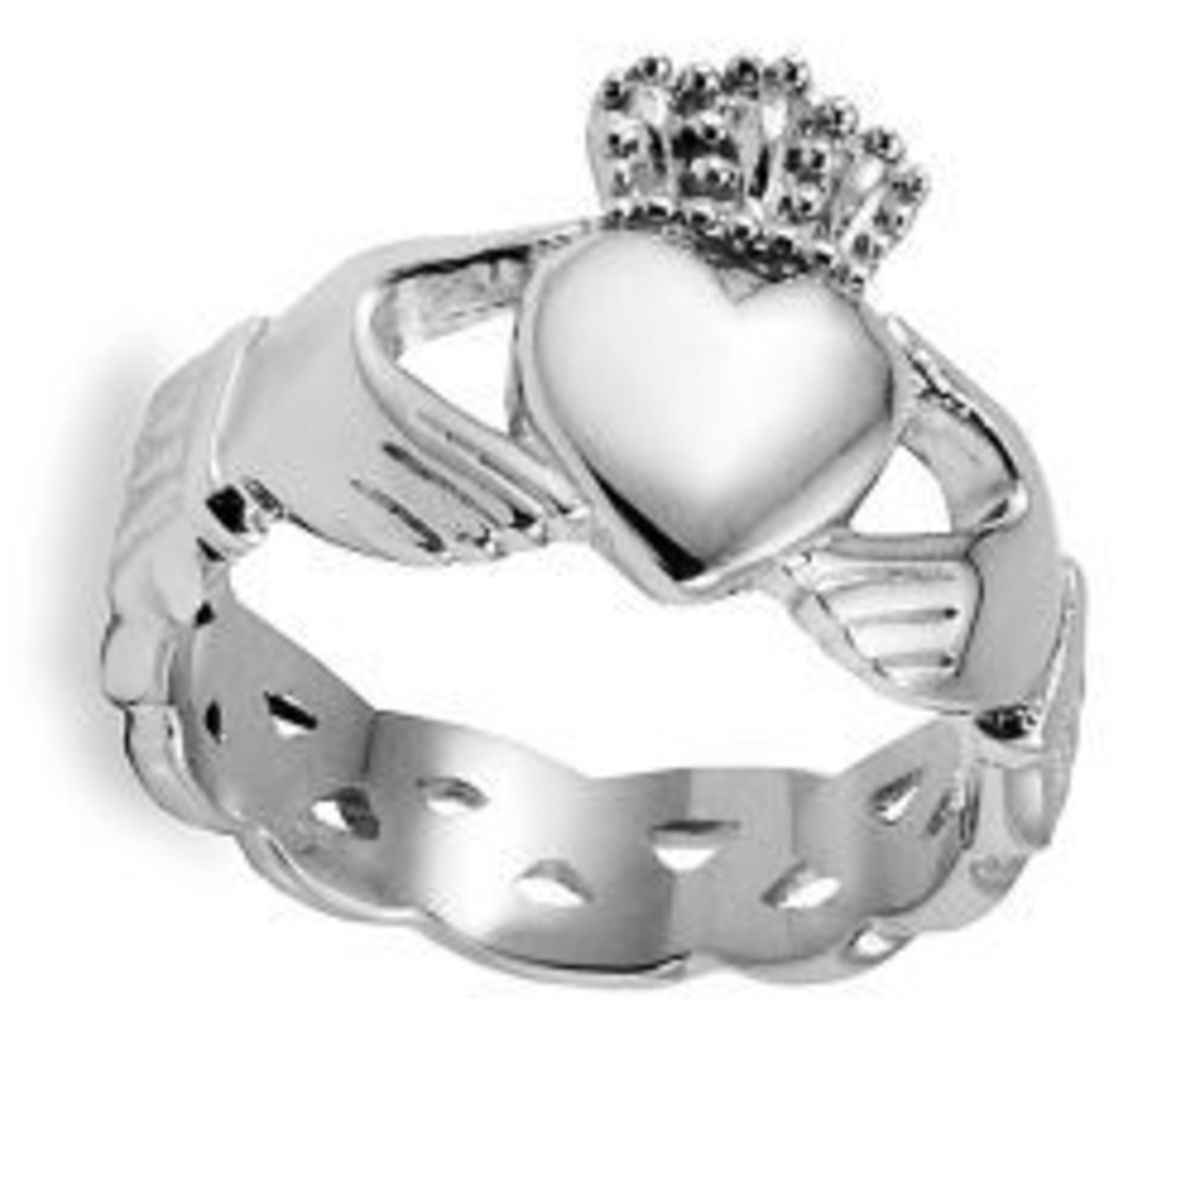 The Ring Of Claddagh, what does it mean?